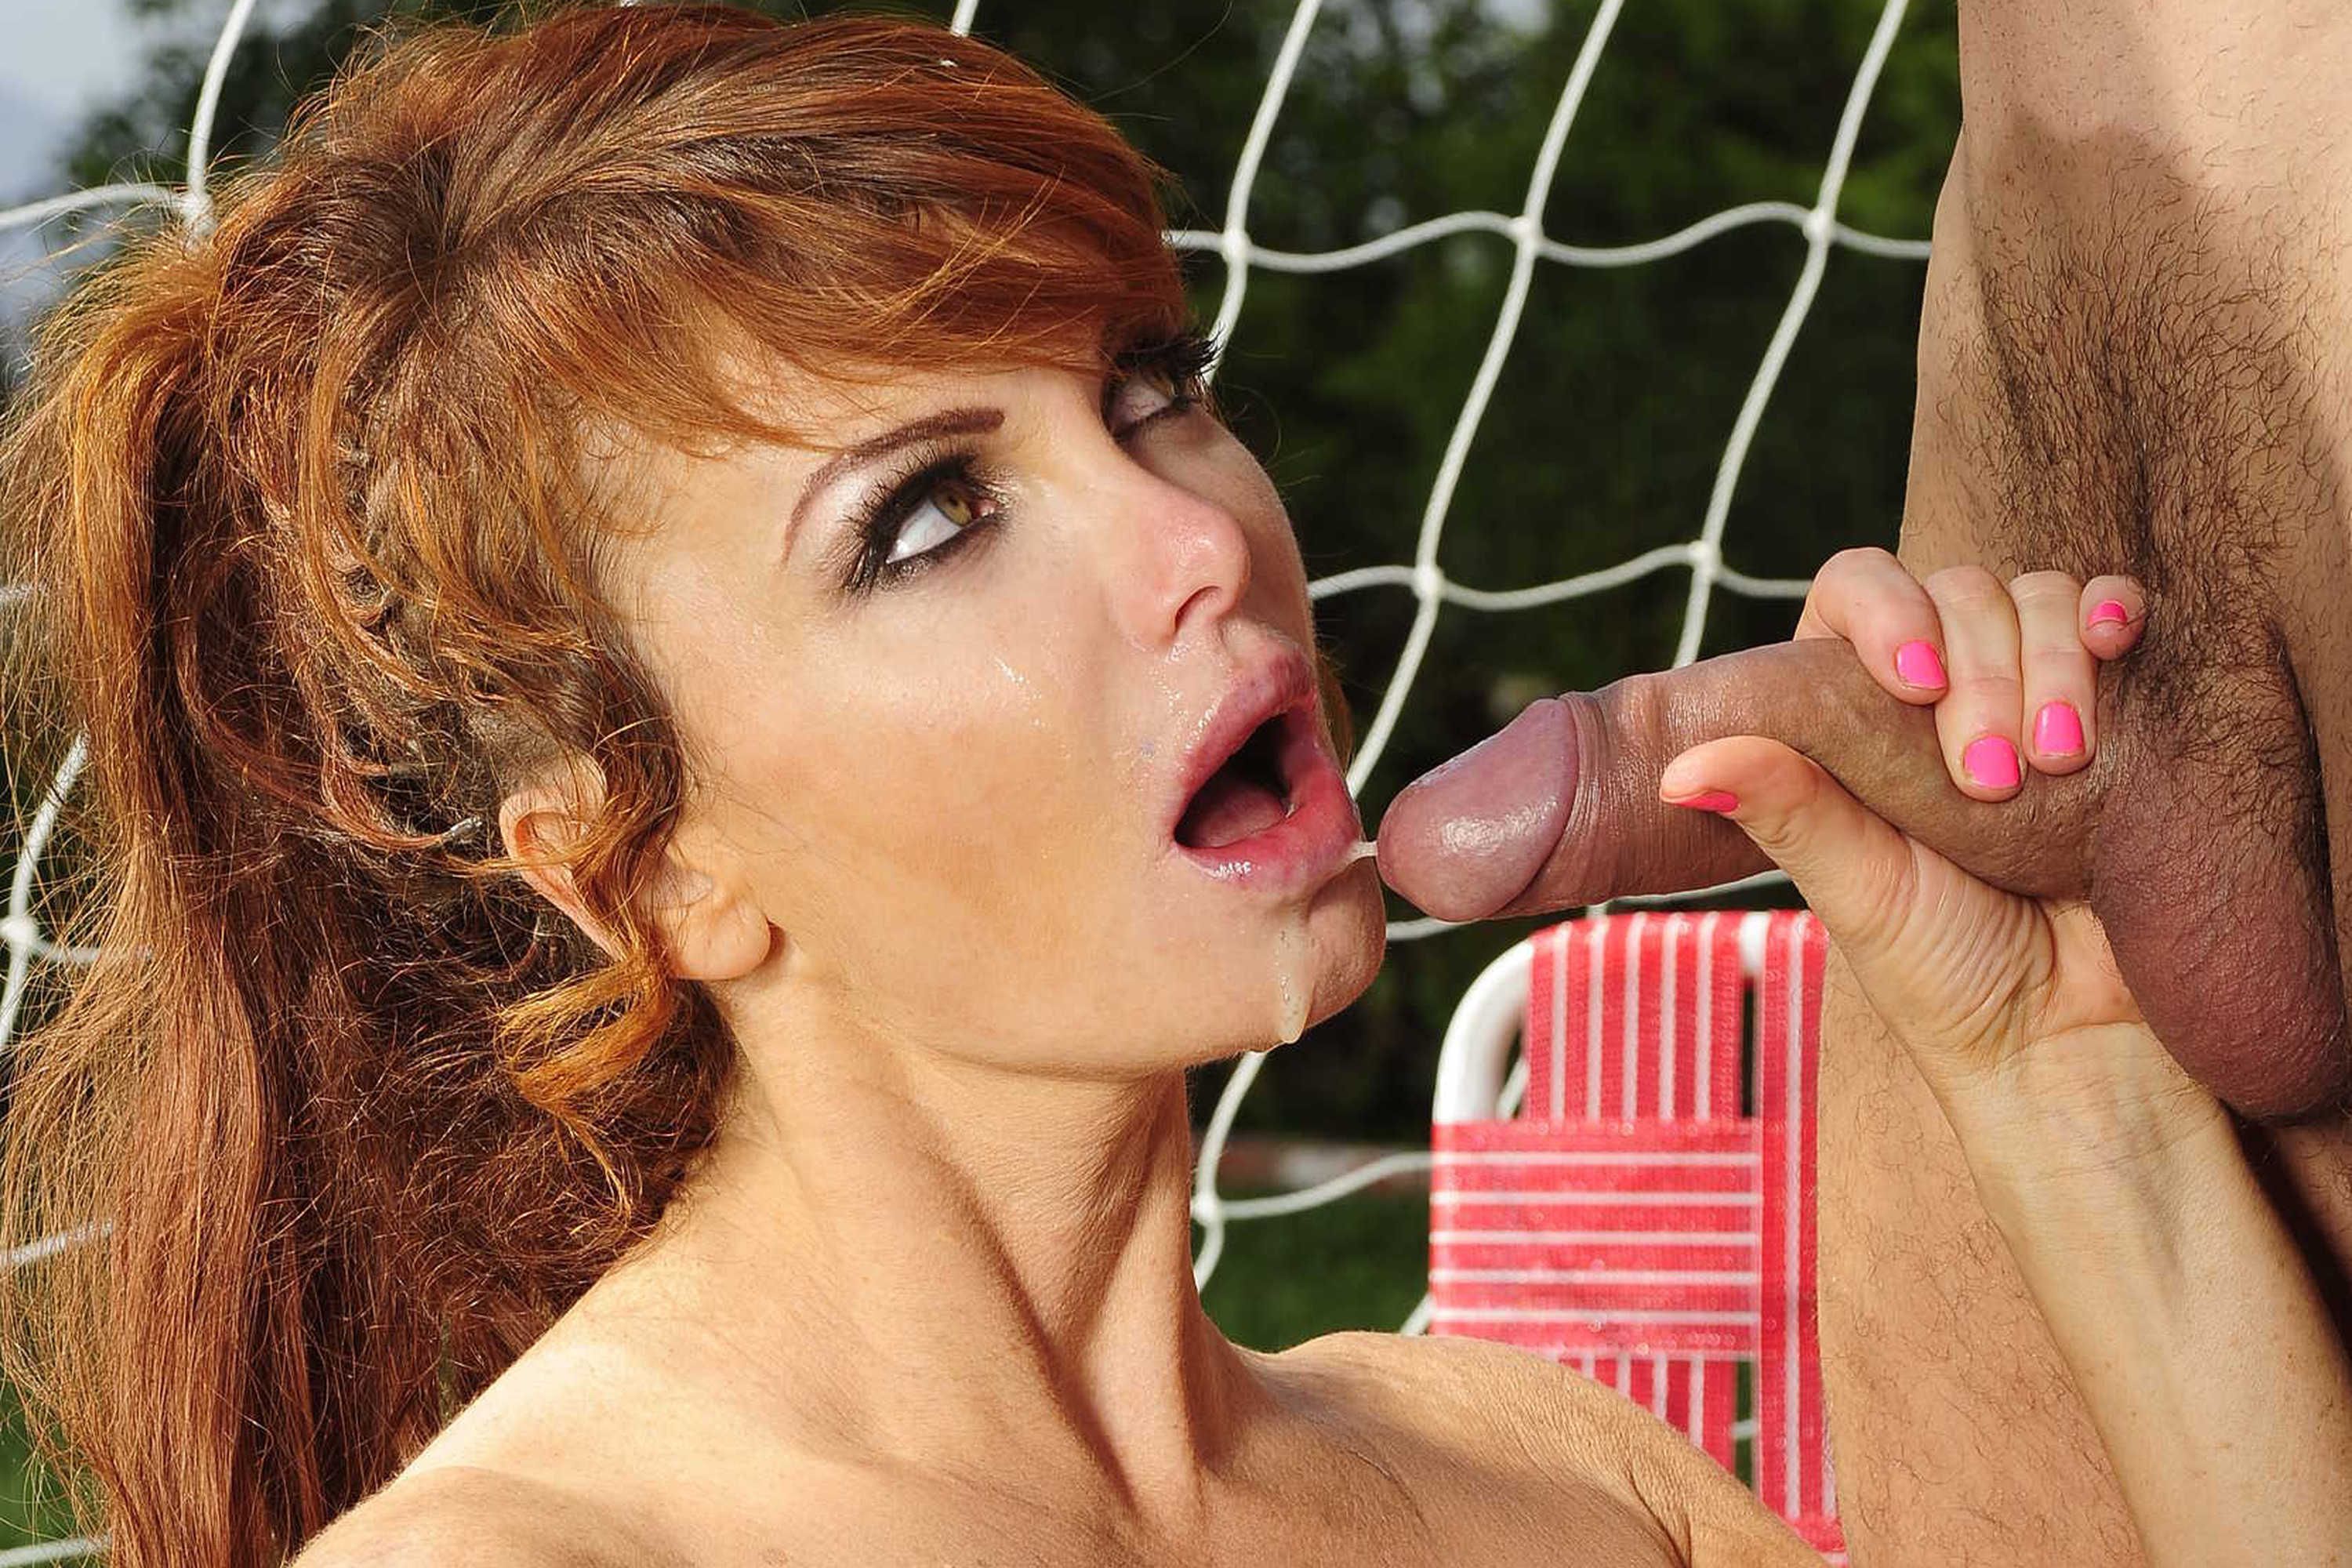 Remarkable, rather Redhead cum face girl